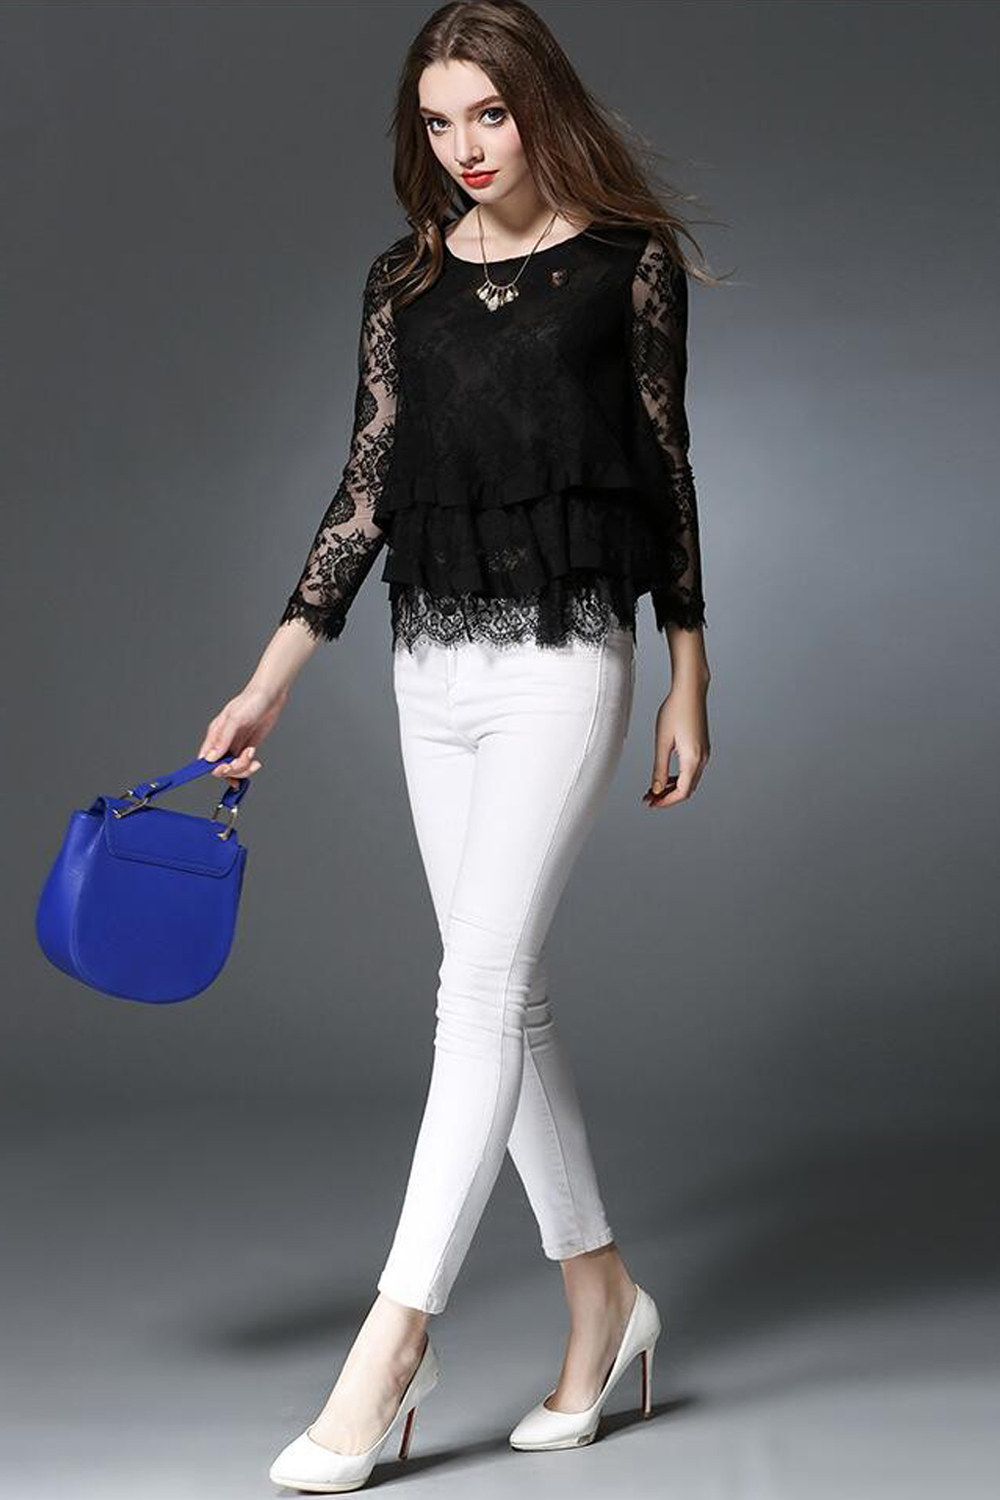 7f32ca5776a UNOMATCH WOMEN LONG SLEEVES LACE COVERED PARTY WEAR SHIRT AND BLOUSE BLACK